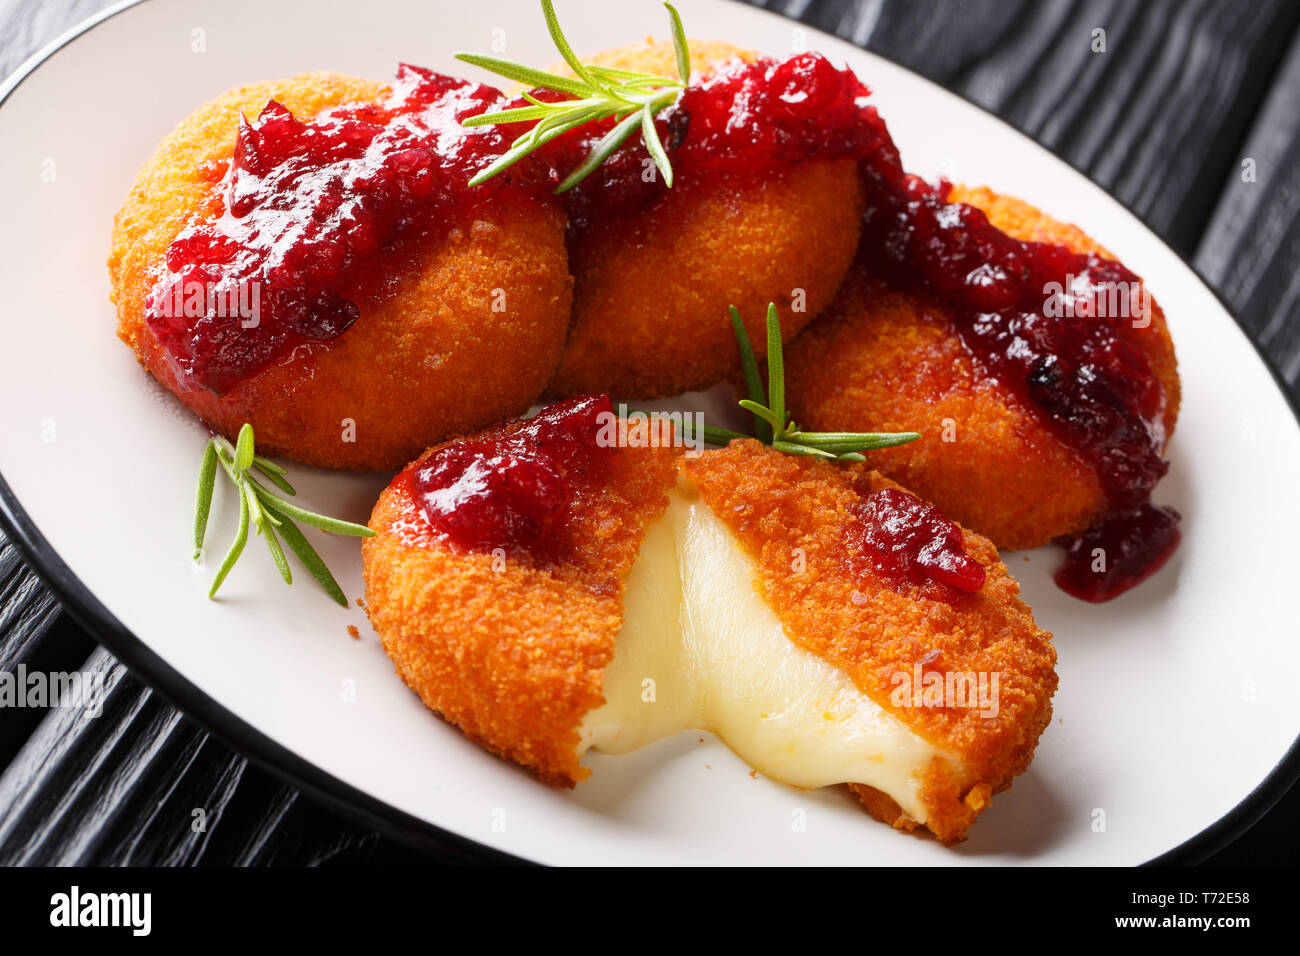 Fried Camembert breaded filed with cranberry sauce and rosemary close up on a plate on the table. horizontal - Stock Image